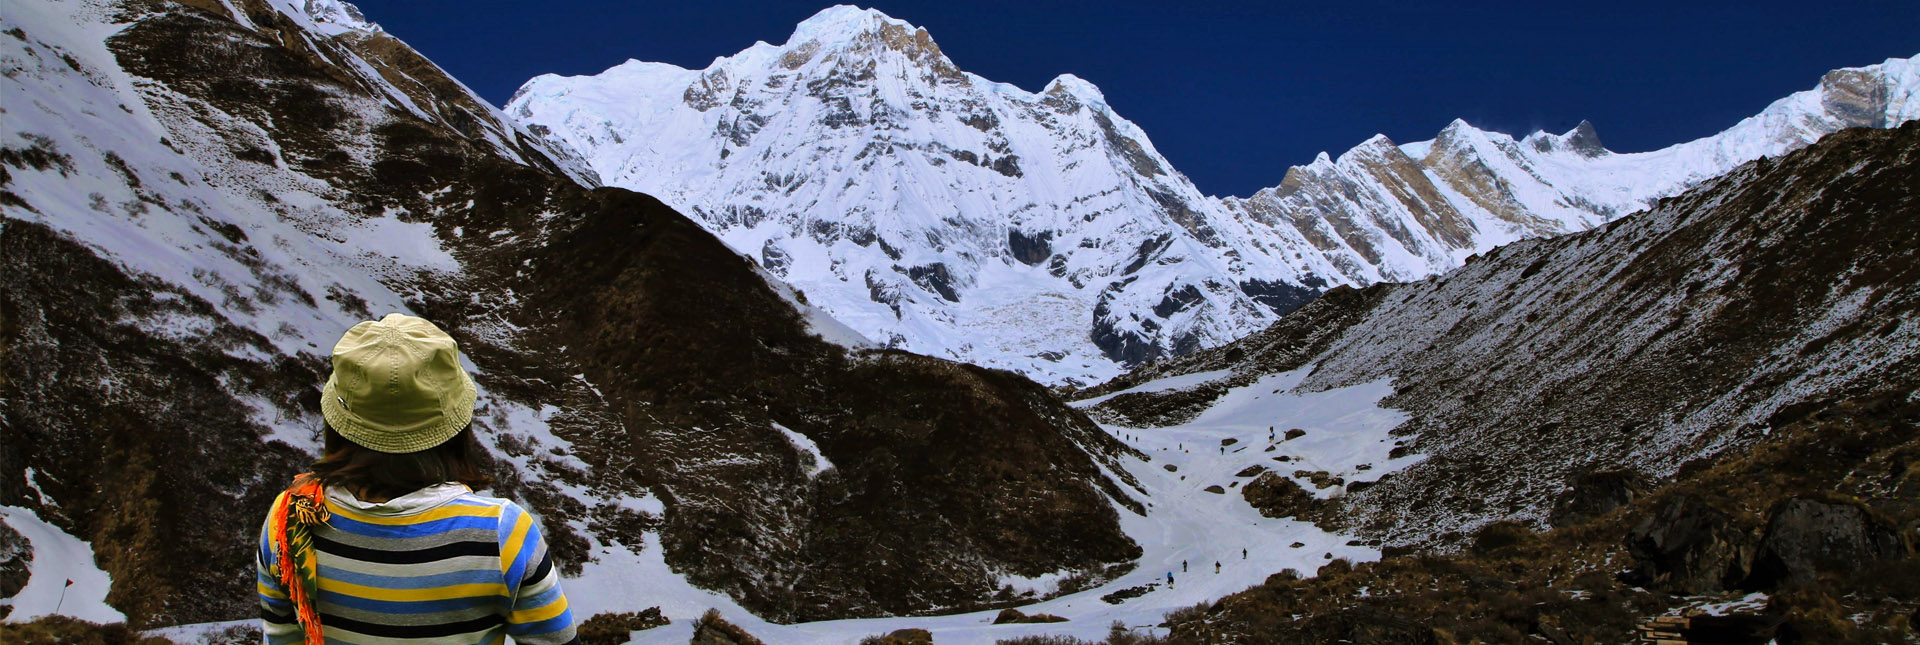 View from near the Annapurna base camp